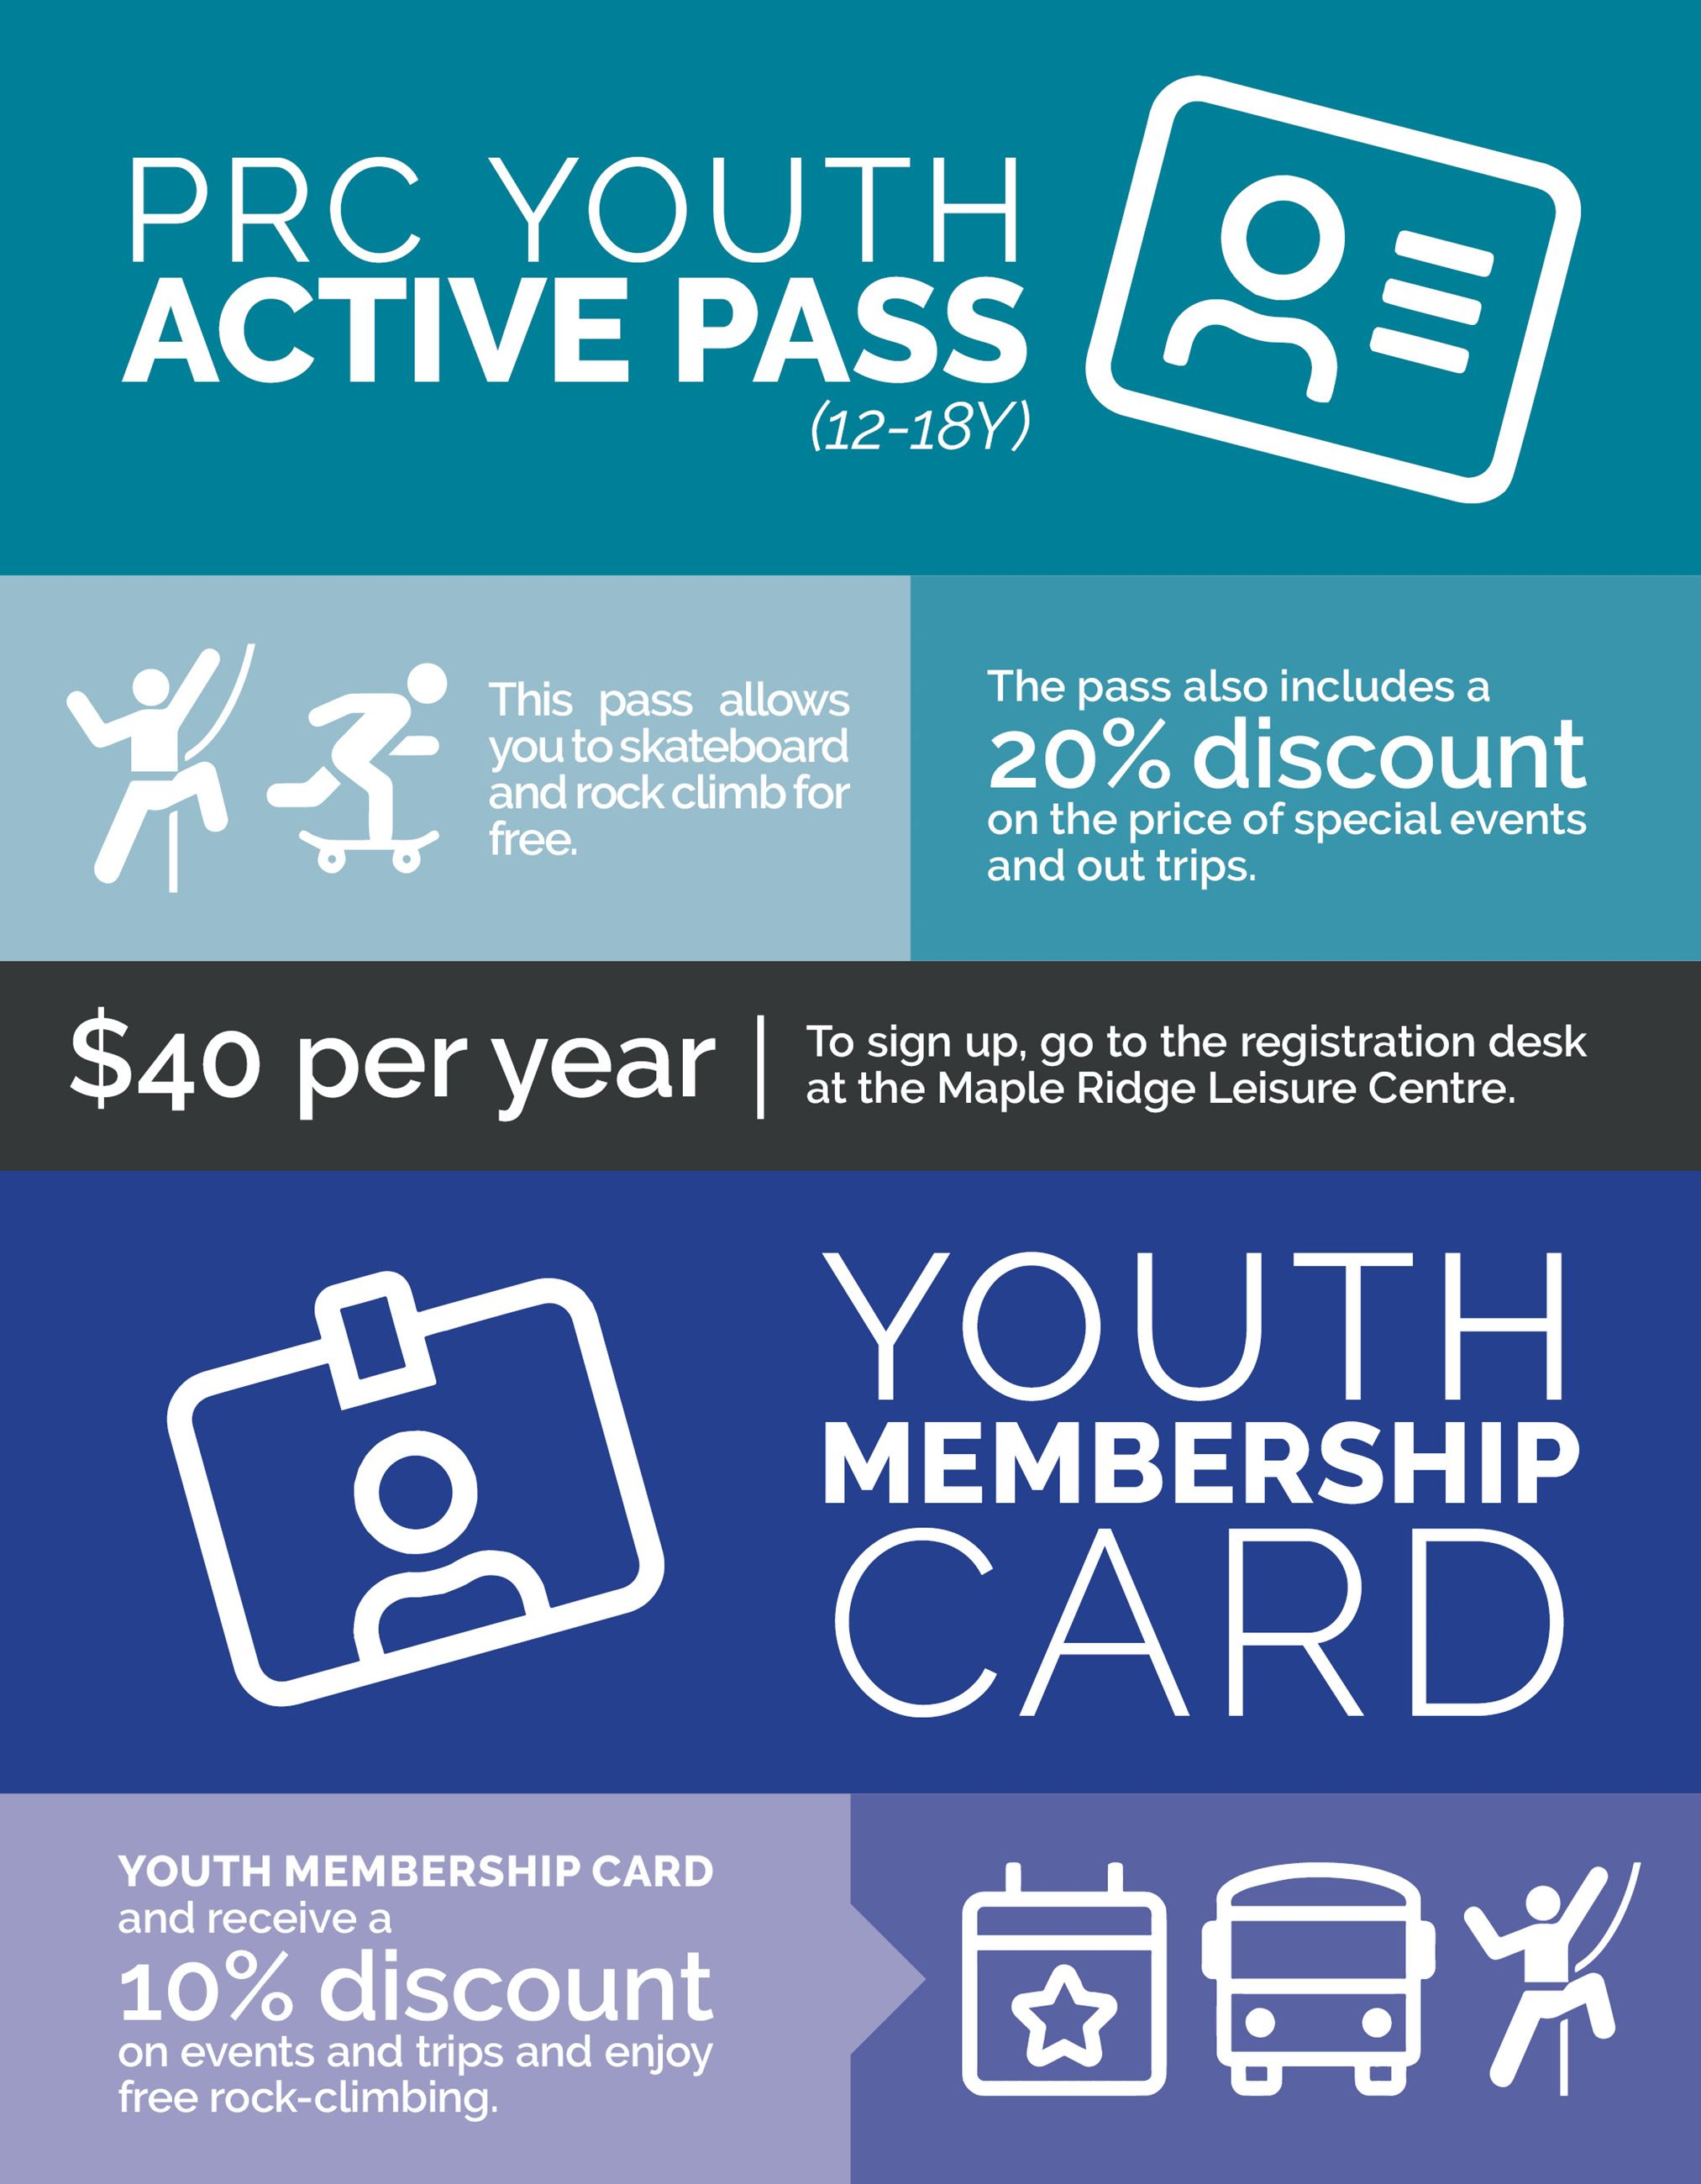 Youth Passes Infographic